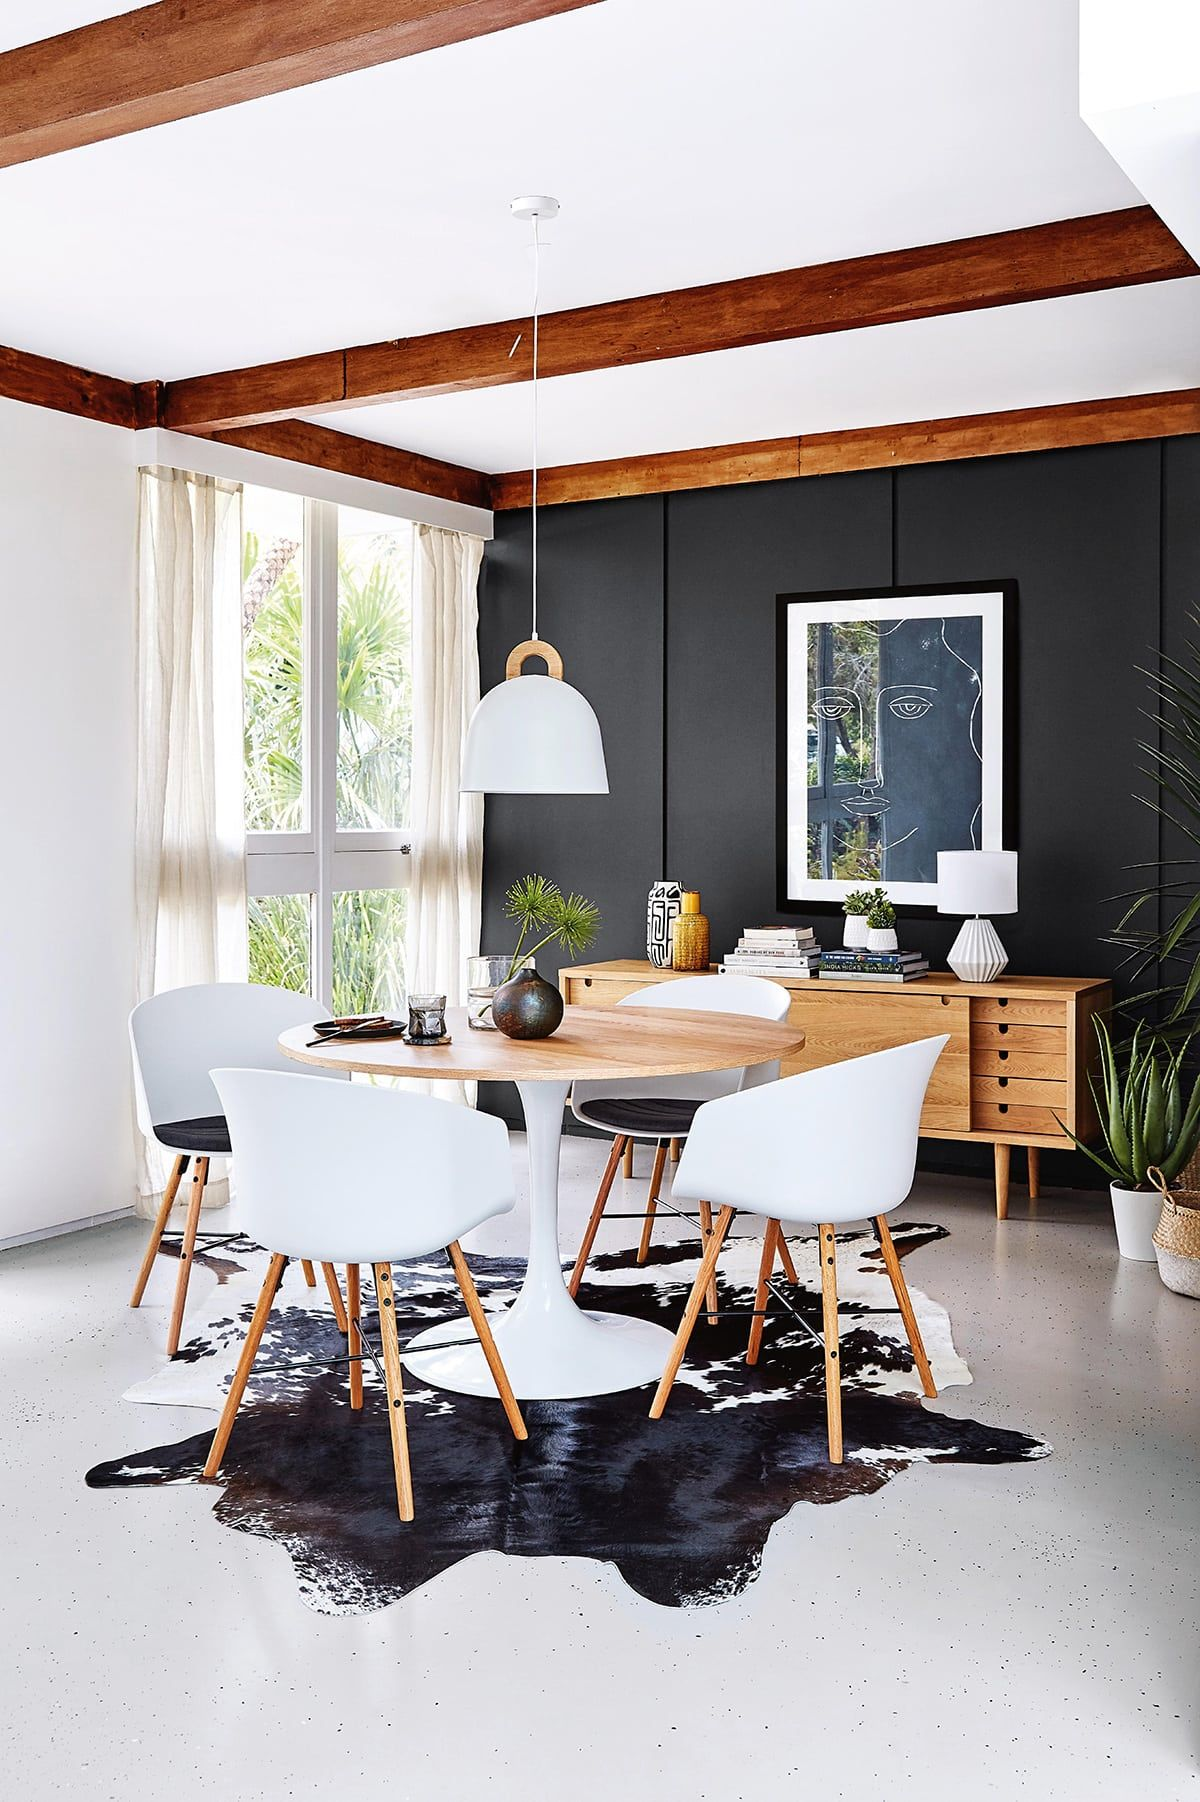 Rugs Under Dining Tables 4 Key Tips To Getting Them Right Tlc